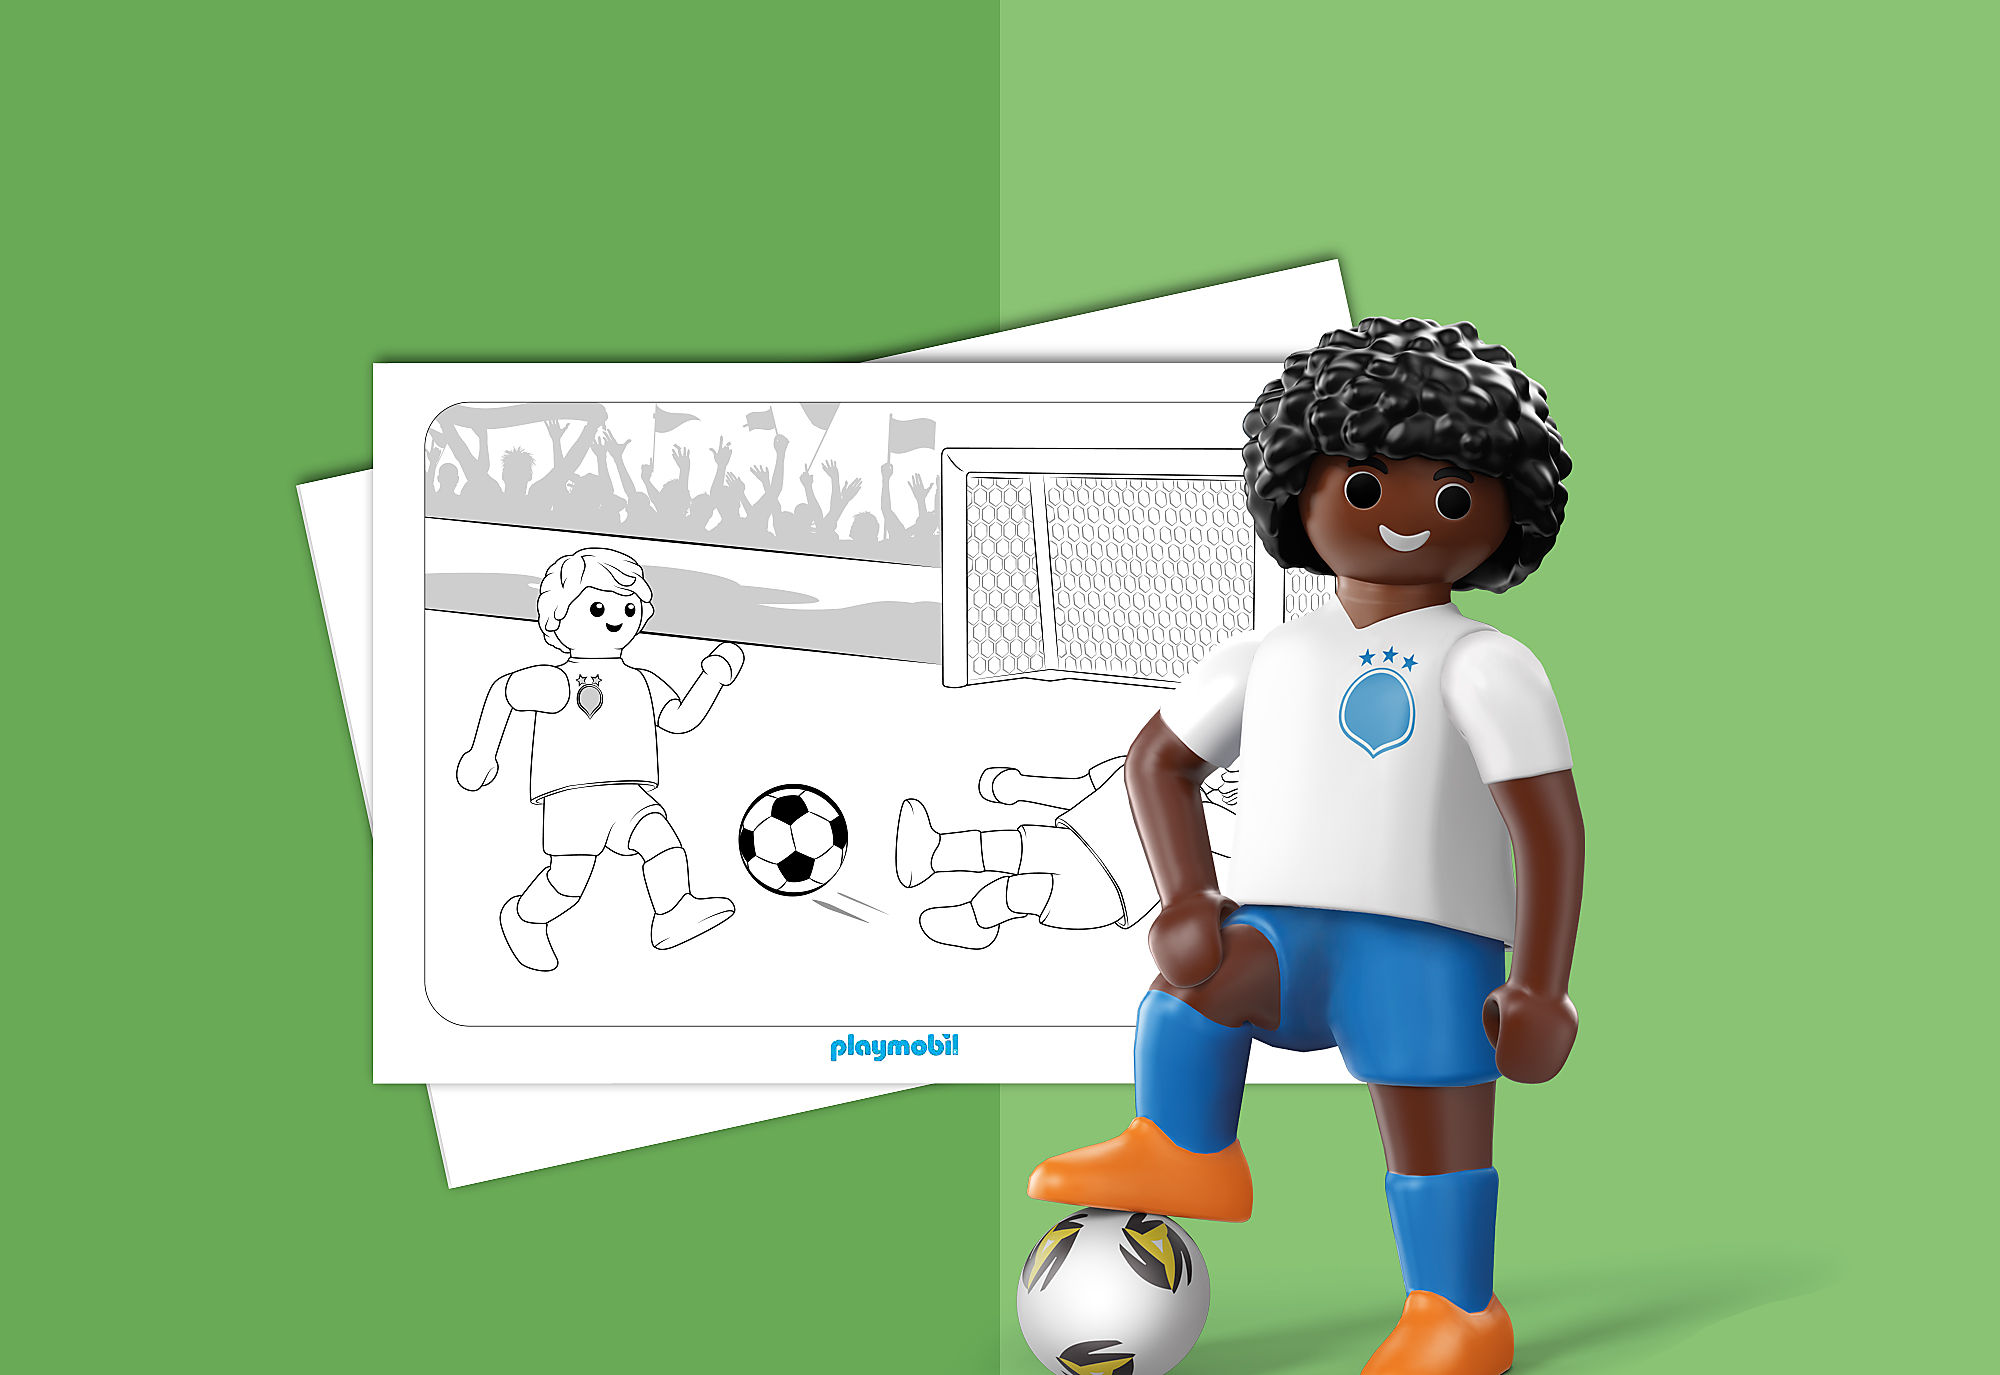 Coloriage Playmobil Foot.Colouring Sheet Playmobil Football Playmobil United Kingdom